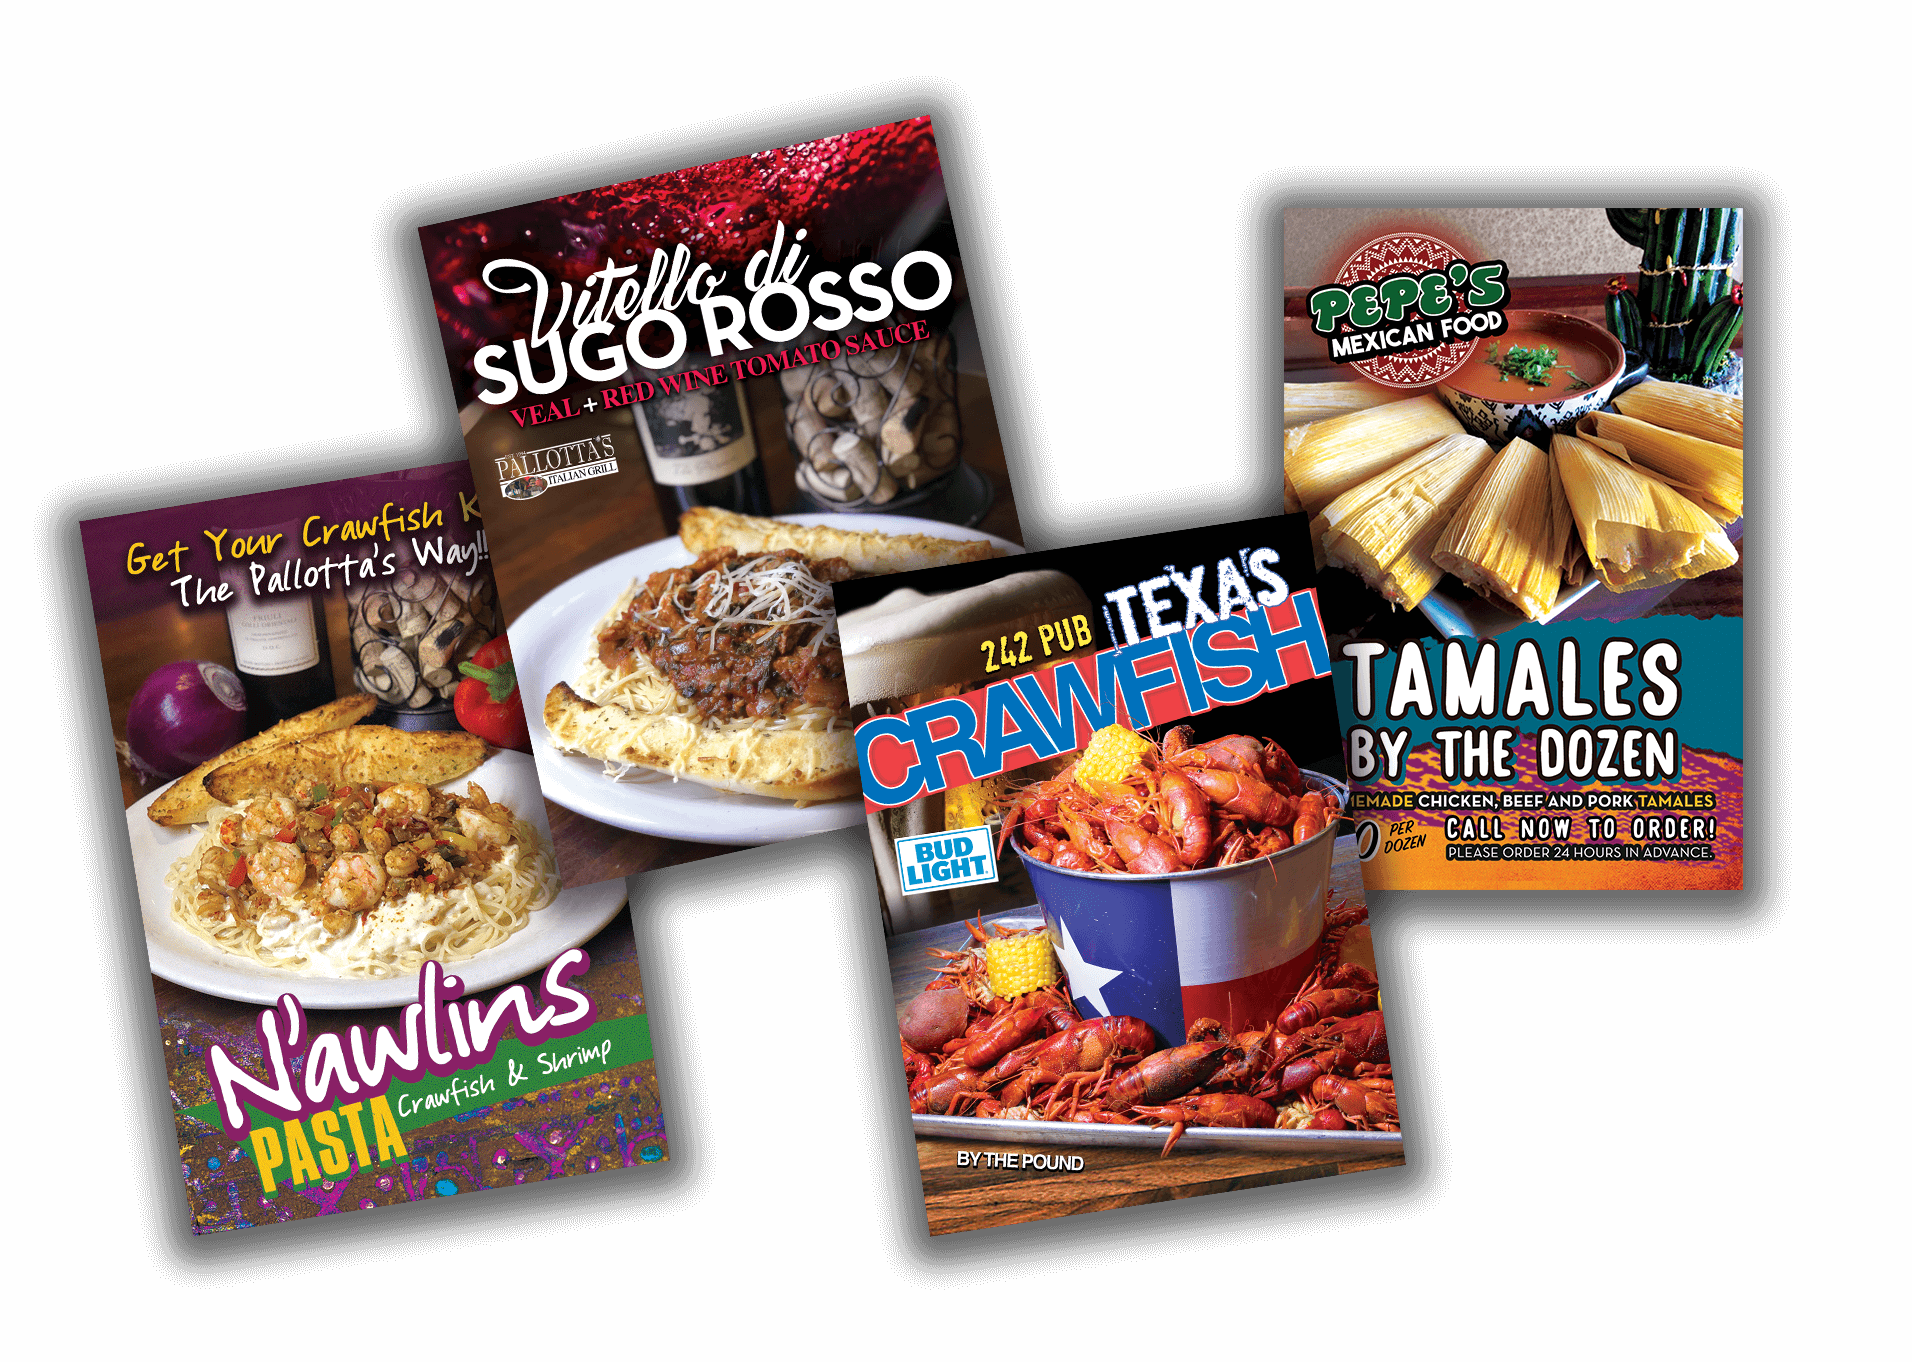 local restaurant printed monthly promotional posters, flyers, and table tents